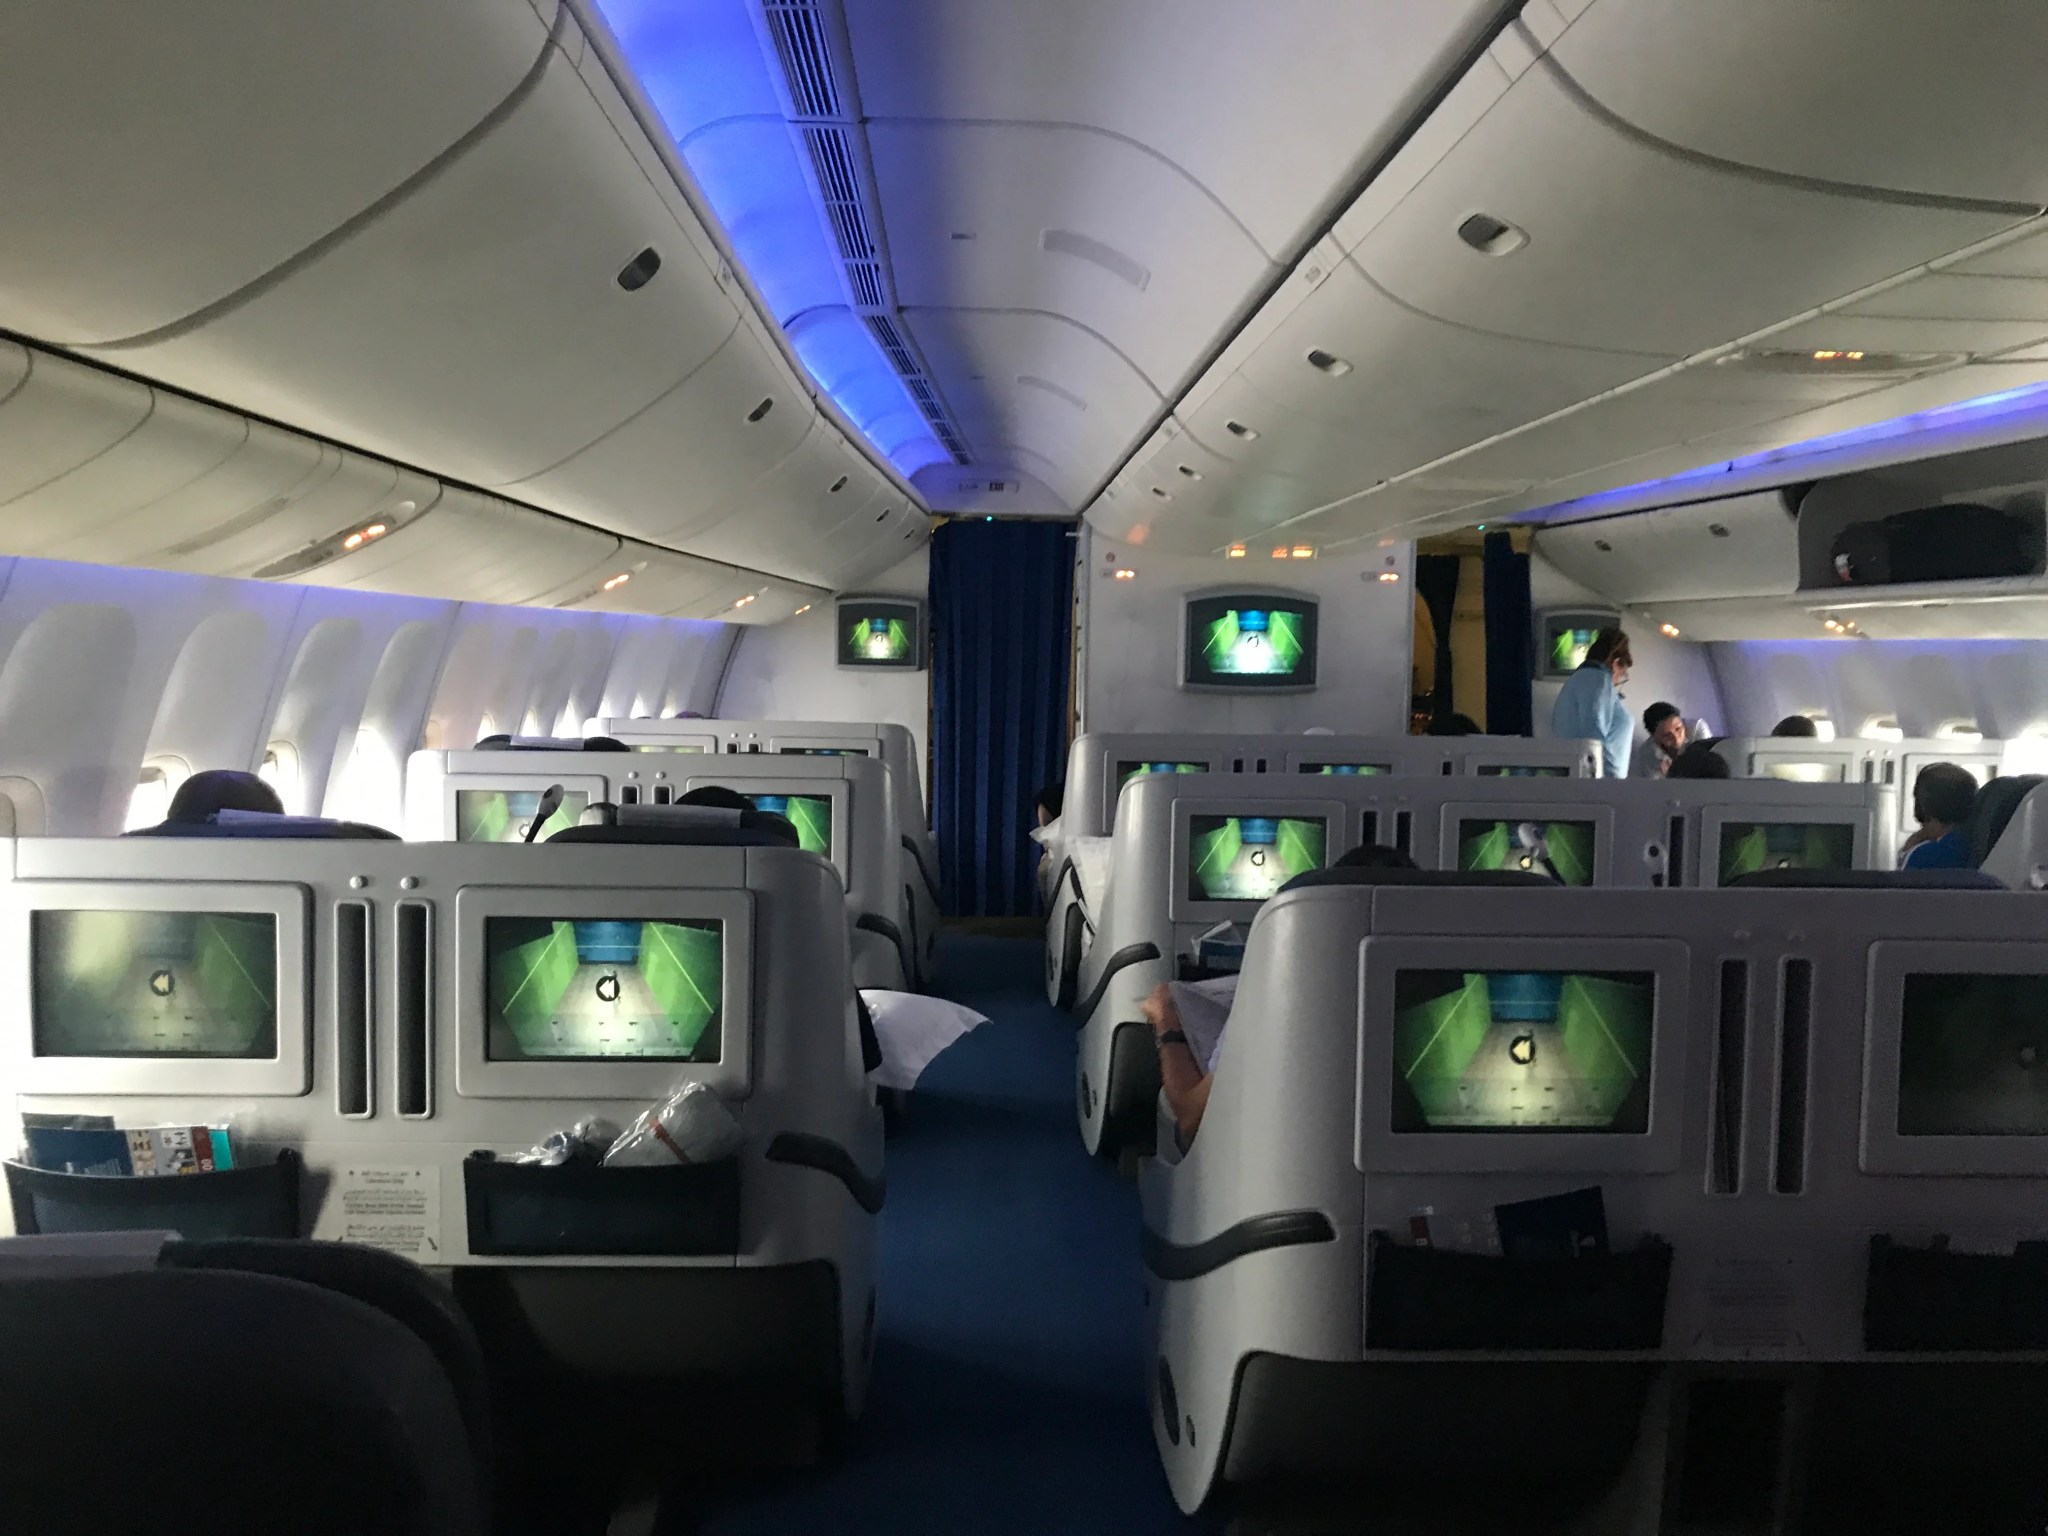 EgyptAir (777-300ER) Business Class Flight, JFK to Cairo